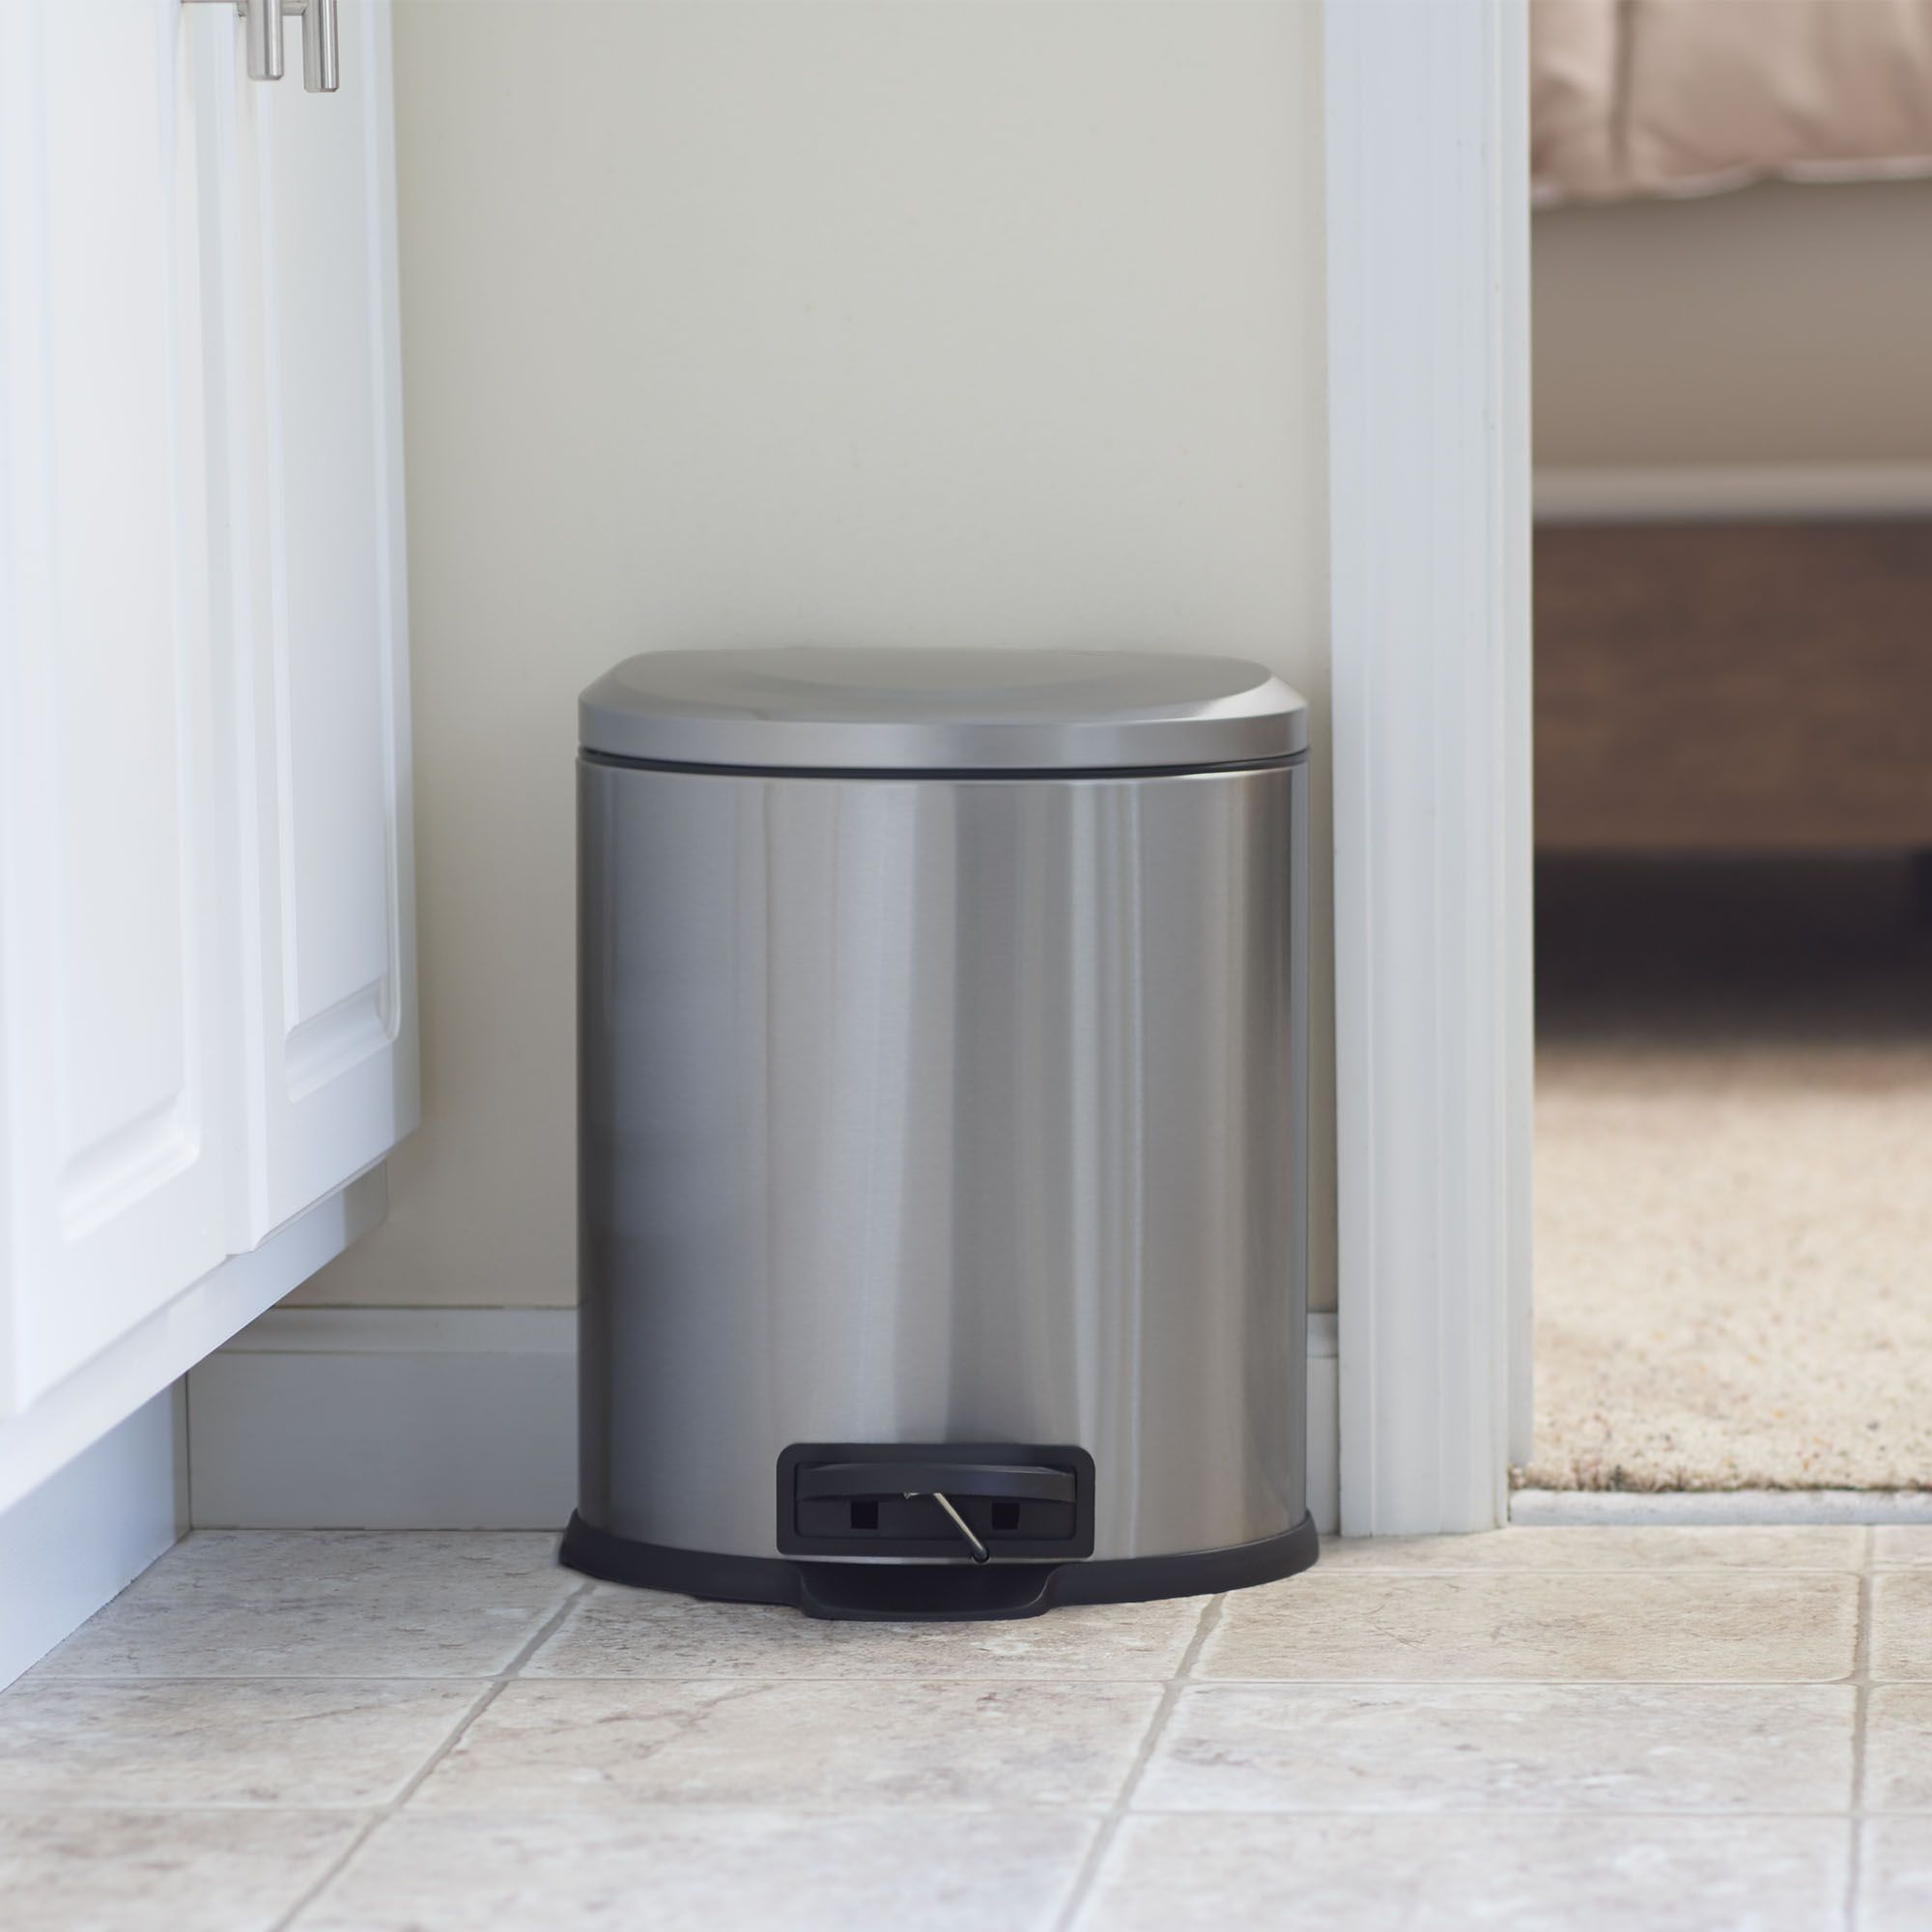 Simplehuman Mini Round Step Trash Can Stainless Steel 4 5 L 1 2 Gal Trash Can Kitchen Trash Cans Brushed Stainless Steel